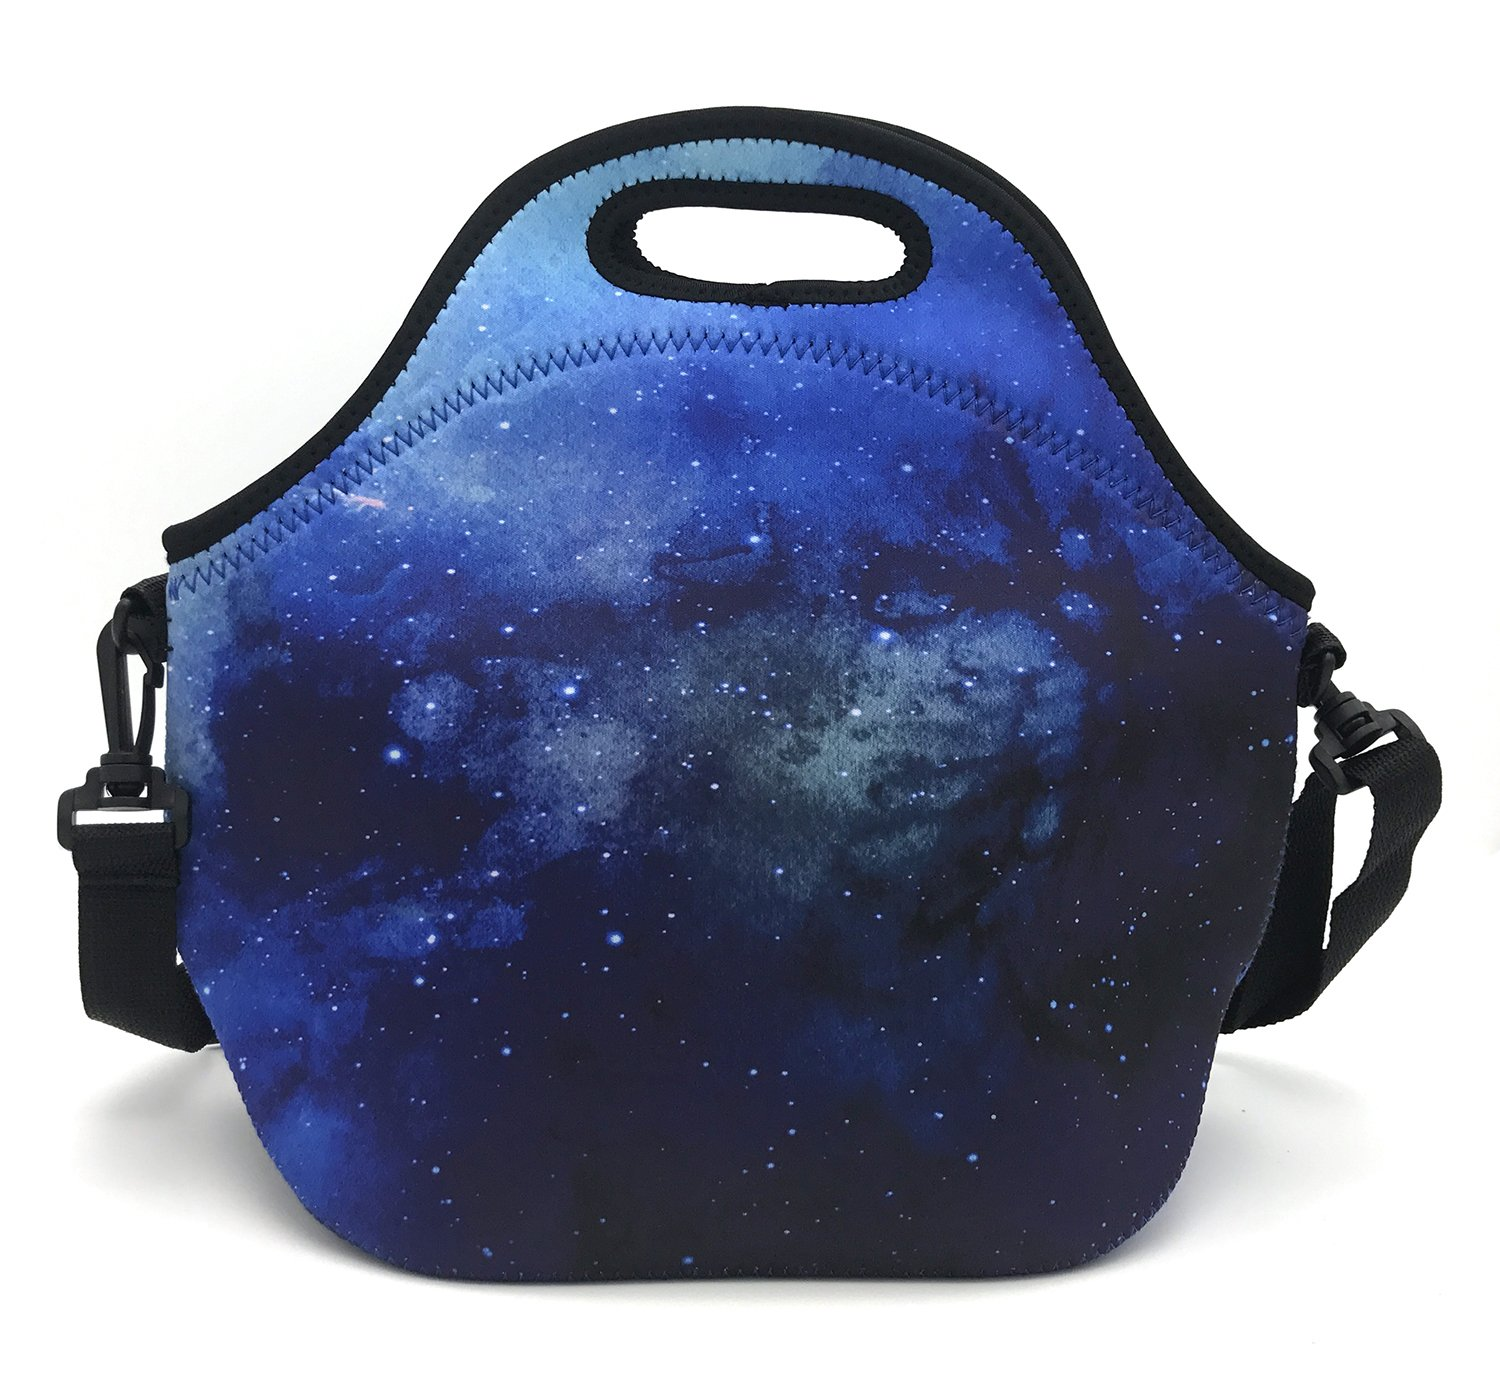 bluee Sky Wakaka Reusable Zipper Thermal Neorpene Insulated Cooler Lunch Bag Shoulder Strap School Lunch Box Picnic Bag Tote Travel Organizer, Keeps Food Fresh  (Campanulaceae)